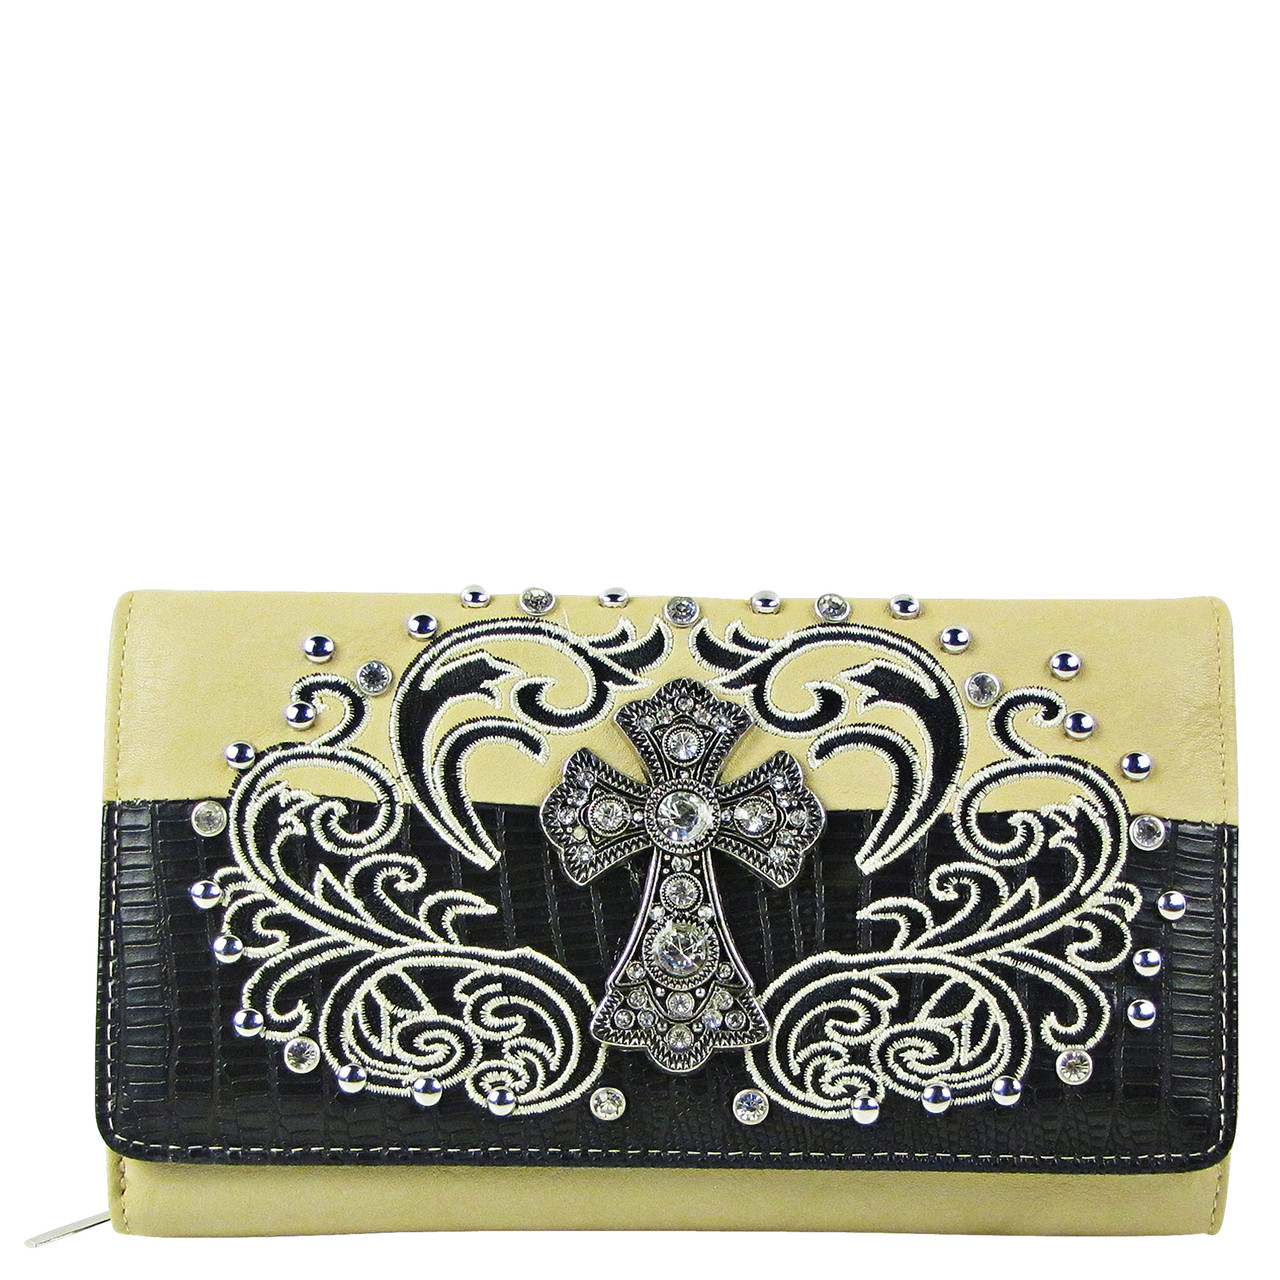 66b3ea54c31a59 Shop BEIGE RHINESTONE STUDDED CROSS LOOK WITH SWIRL DESIGN CHECKBOOK ...